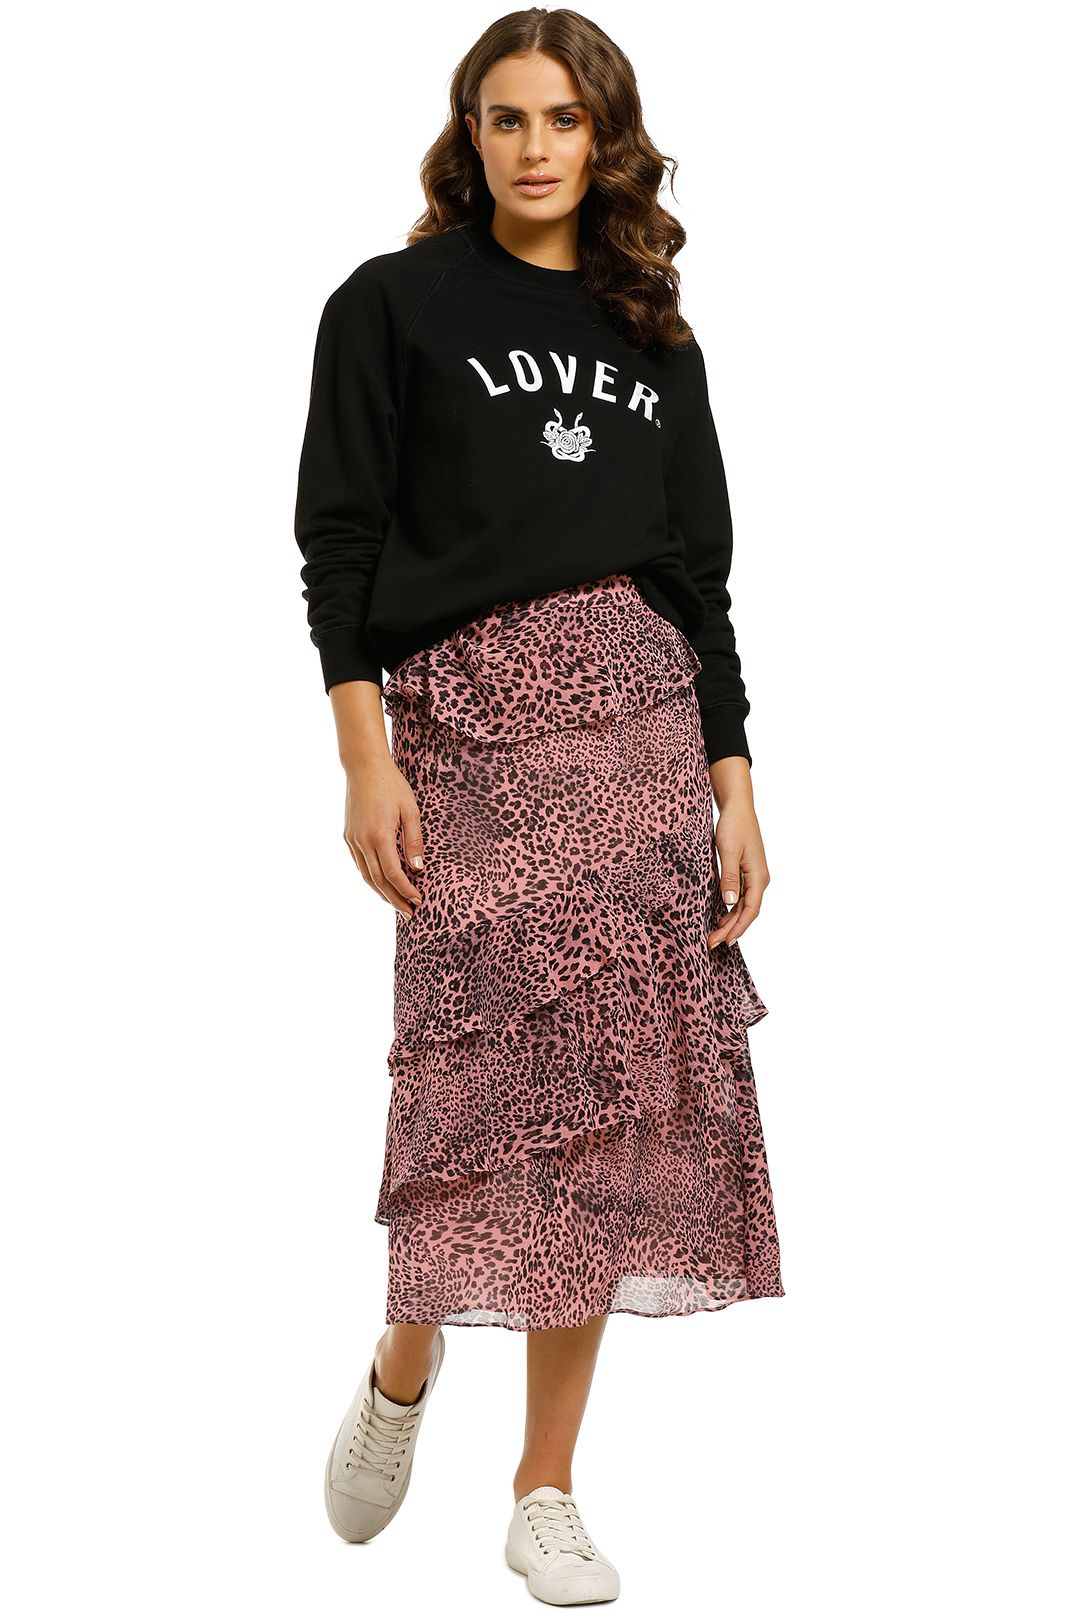 Lover-Embroidered-Sweat-Black-Front